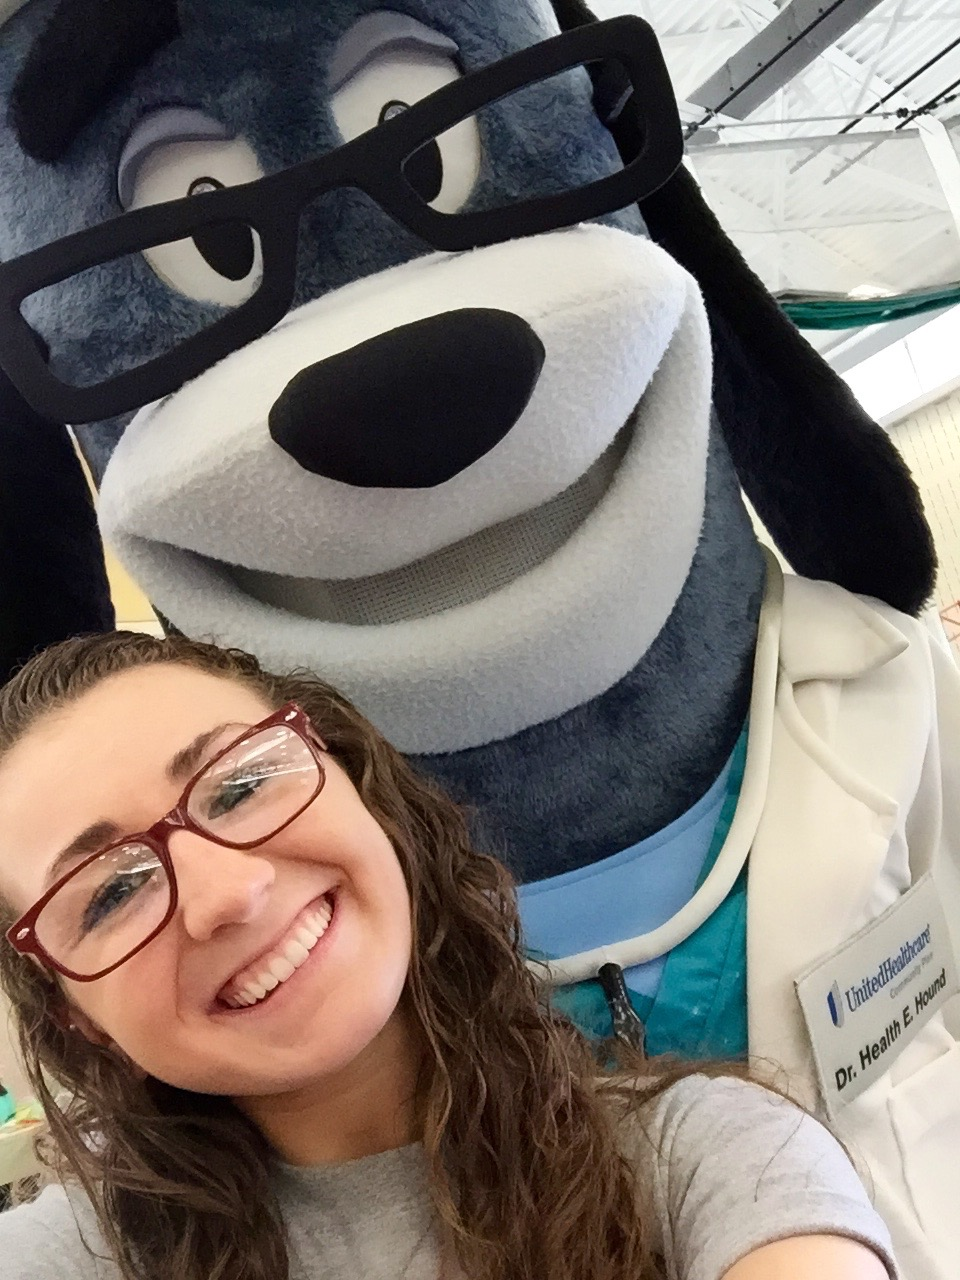 Selfie with Dr. Health E. Hound!